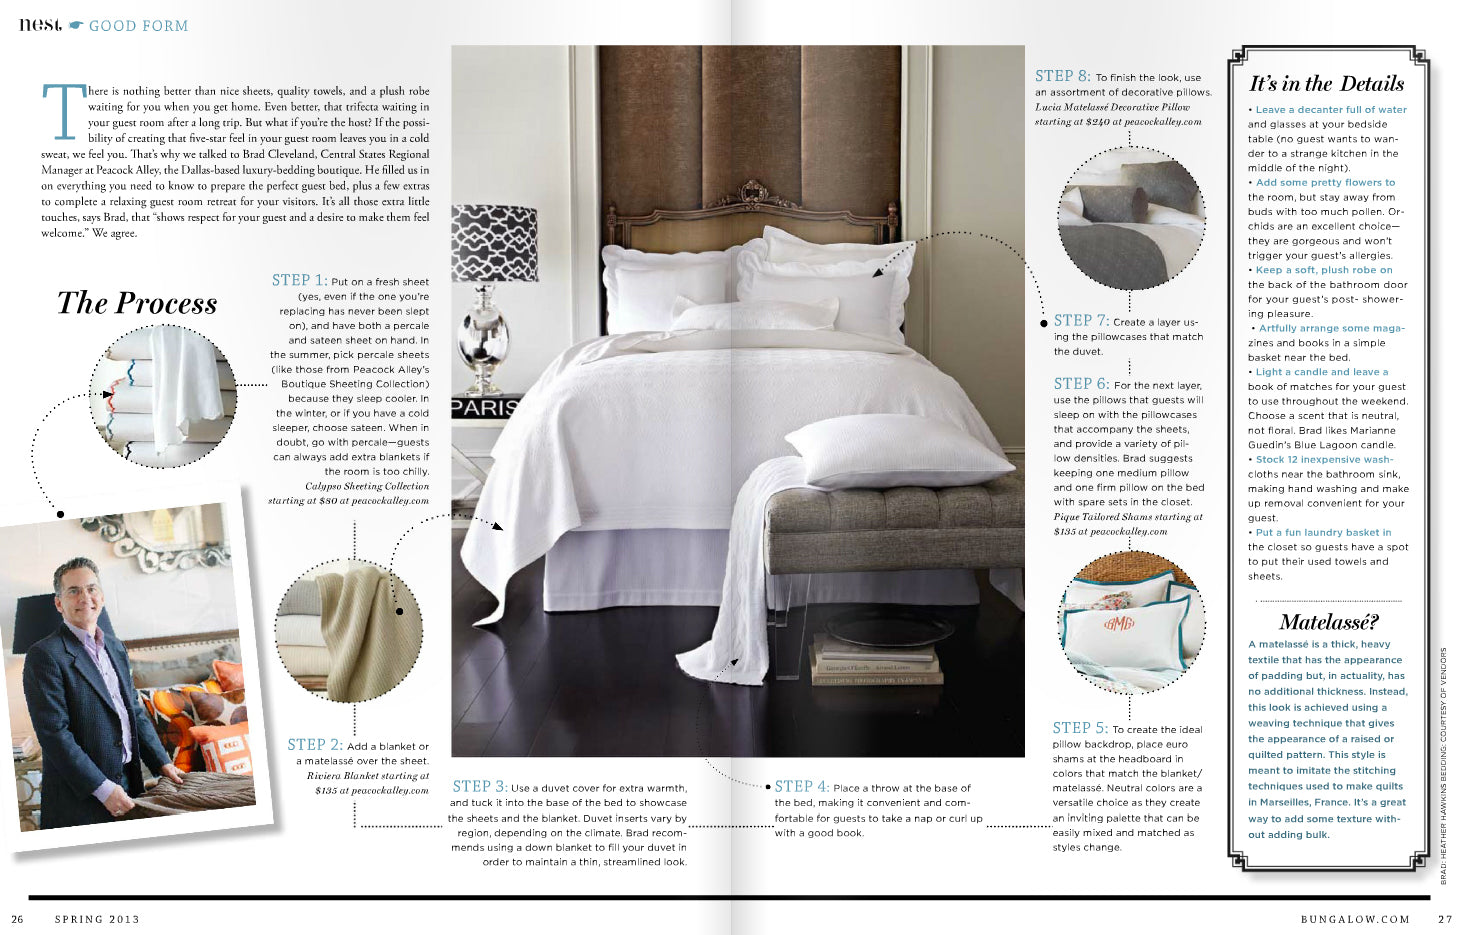 Second and third page of Anatomy of a Guest Bed from the Spring 2013 issue of Bungalow